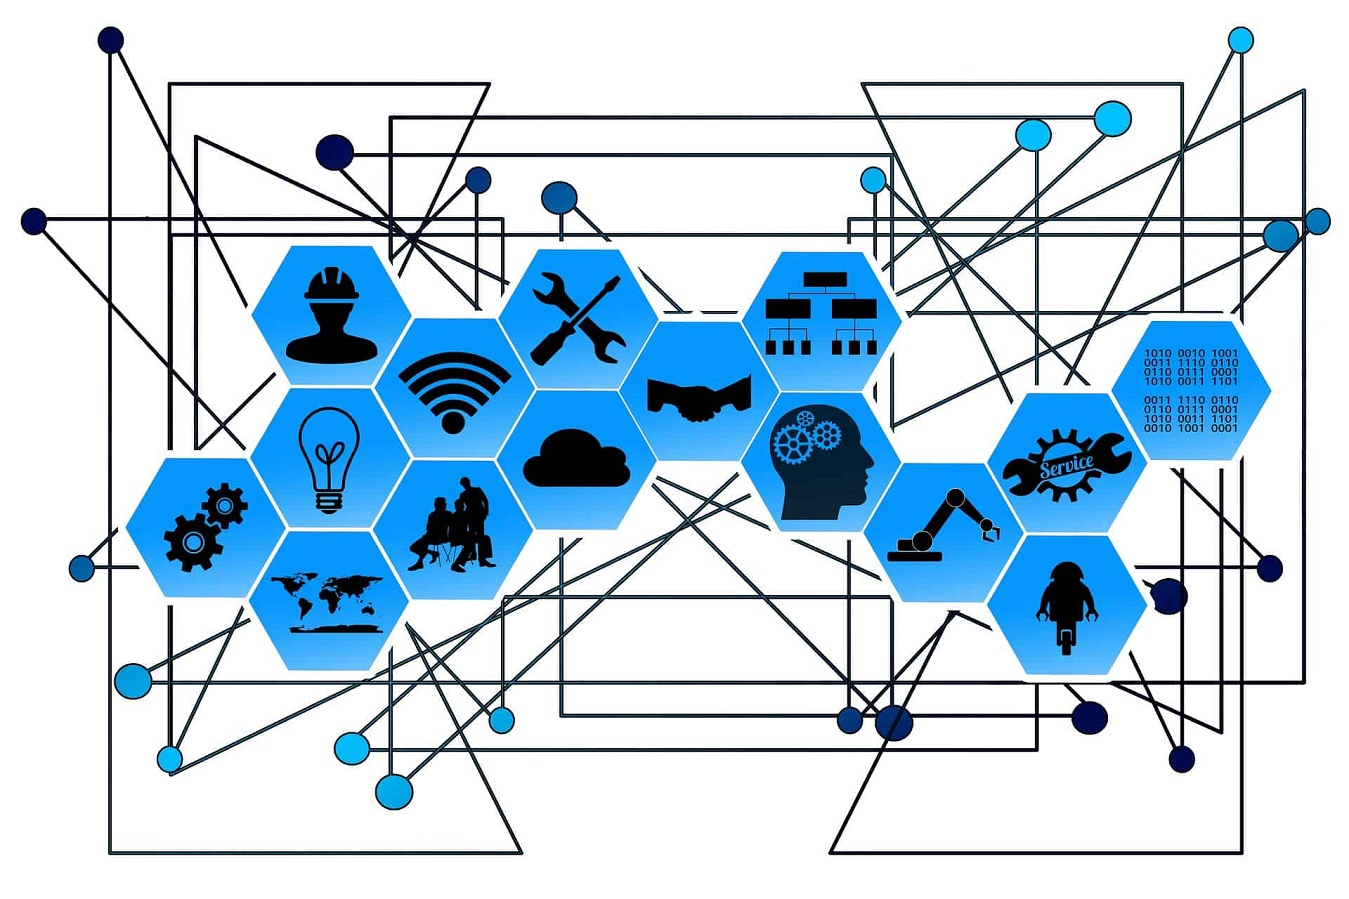 IOT_Growth_Engineering_Design_Services.